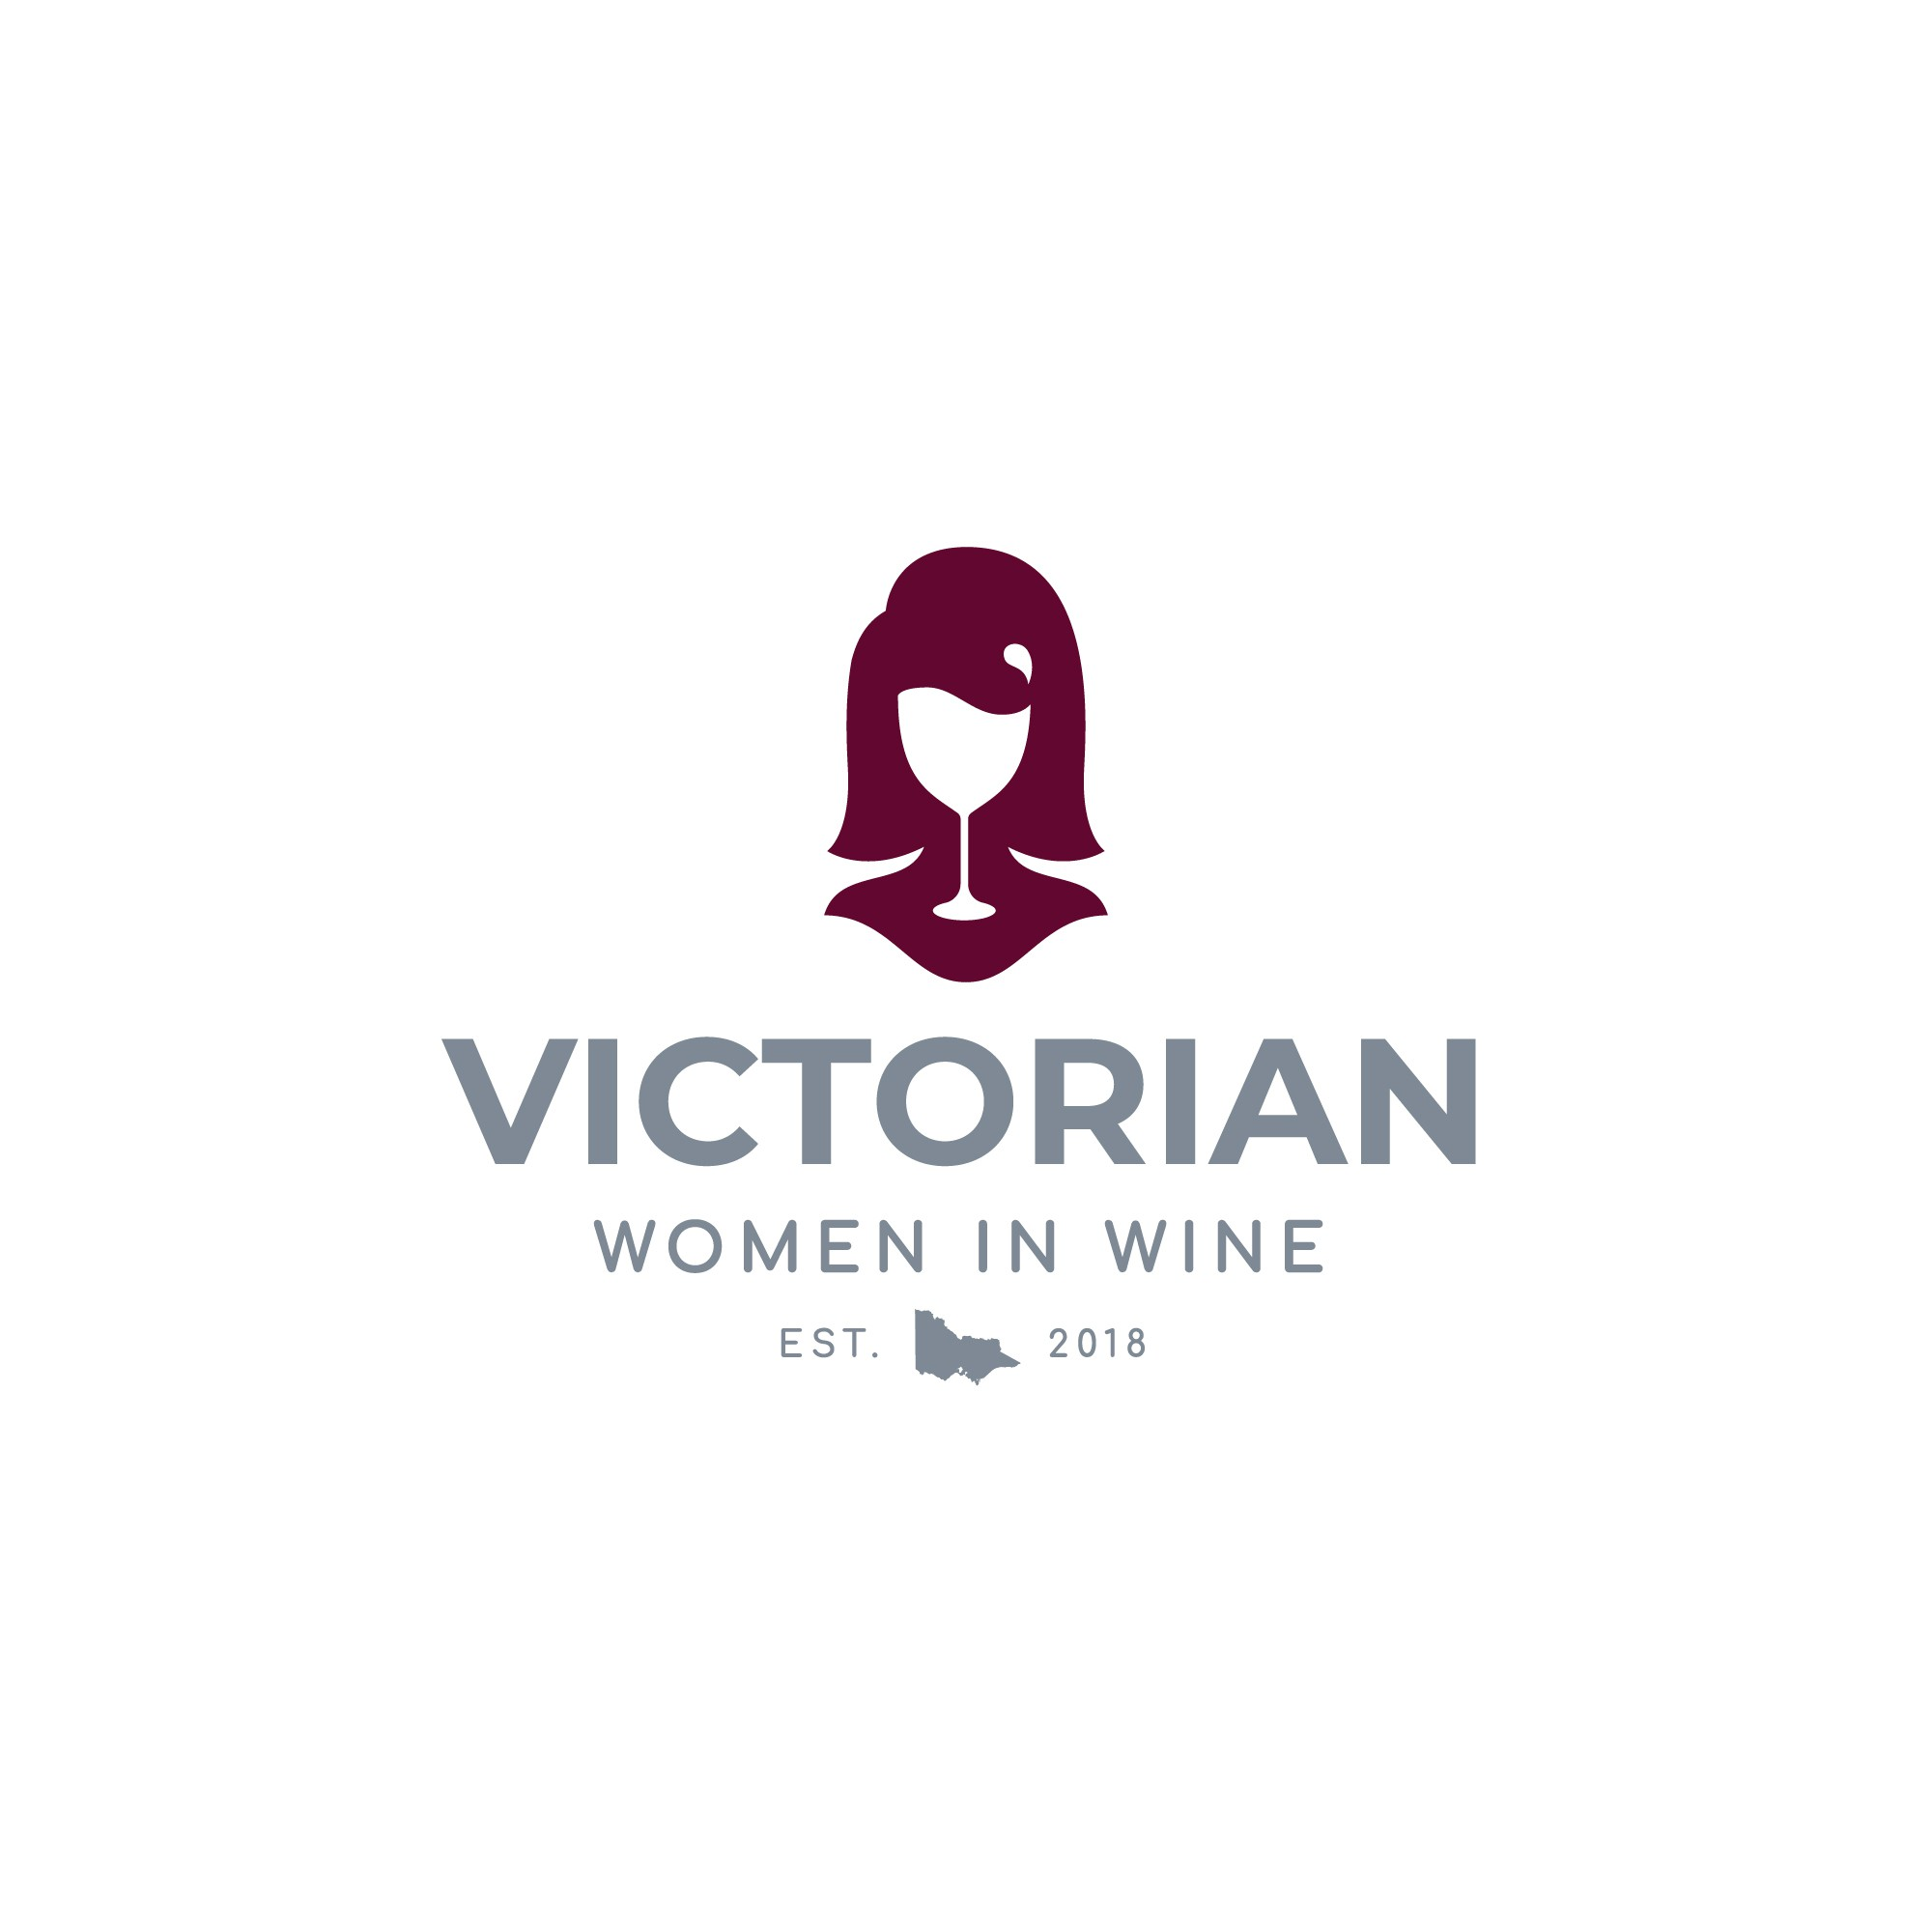 Create a brand to promote women in the wine industry